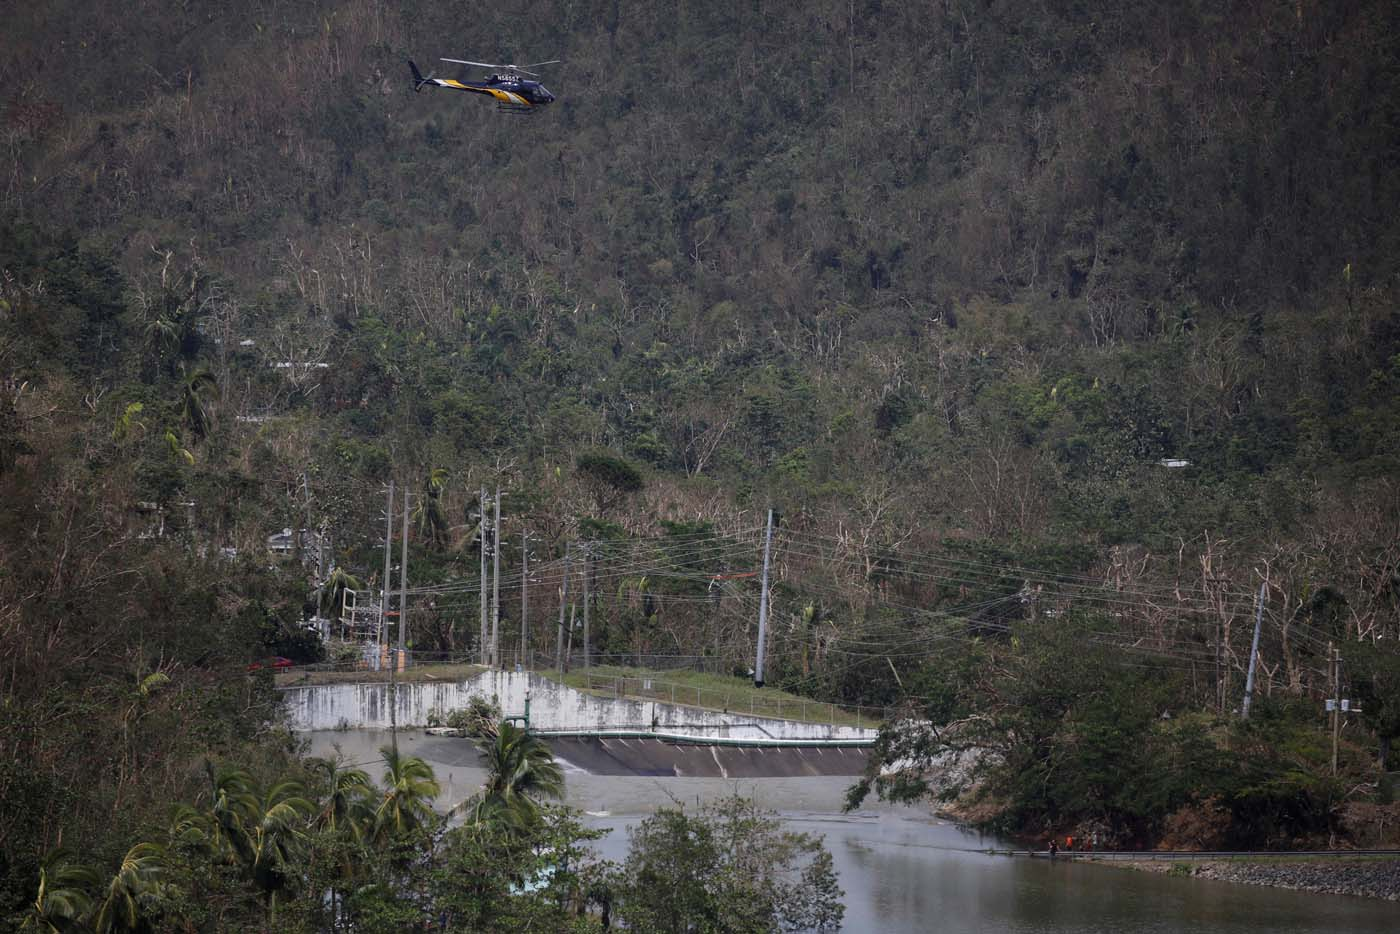 People look at water flowing over the road as a helicopter flies over them at the dam of the Guajataca lake after the area was hit by Hurricane Maria in Guajataca, Puerto Rico September 23, 2017. REUTERS/Carlos Garcia Rawlins